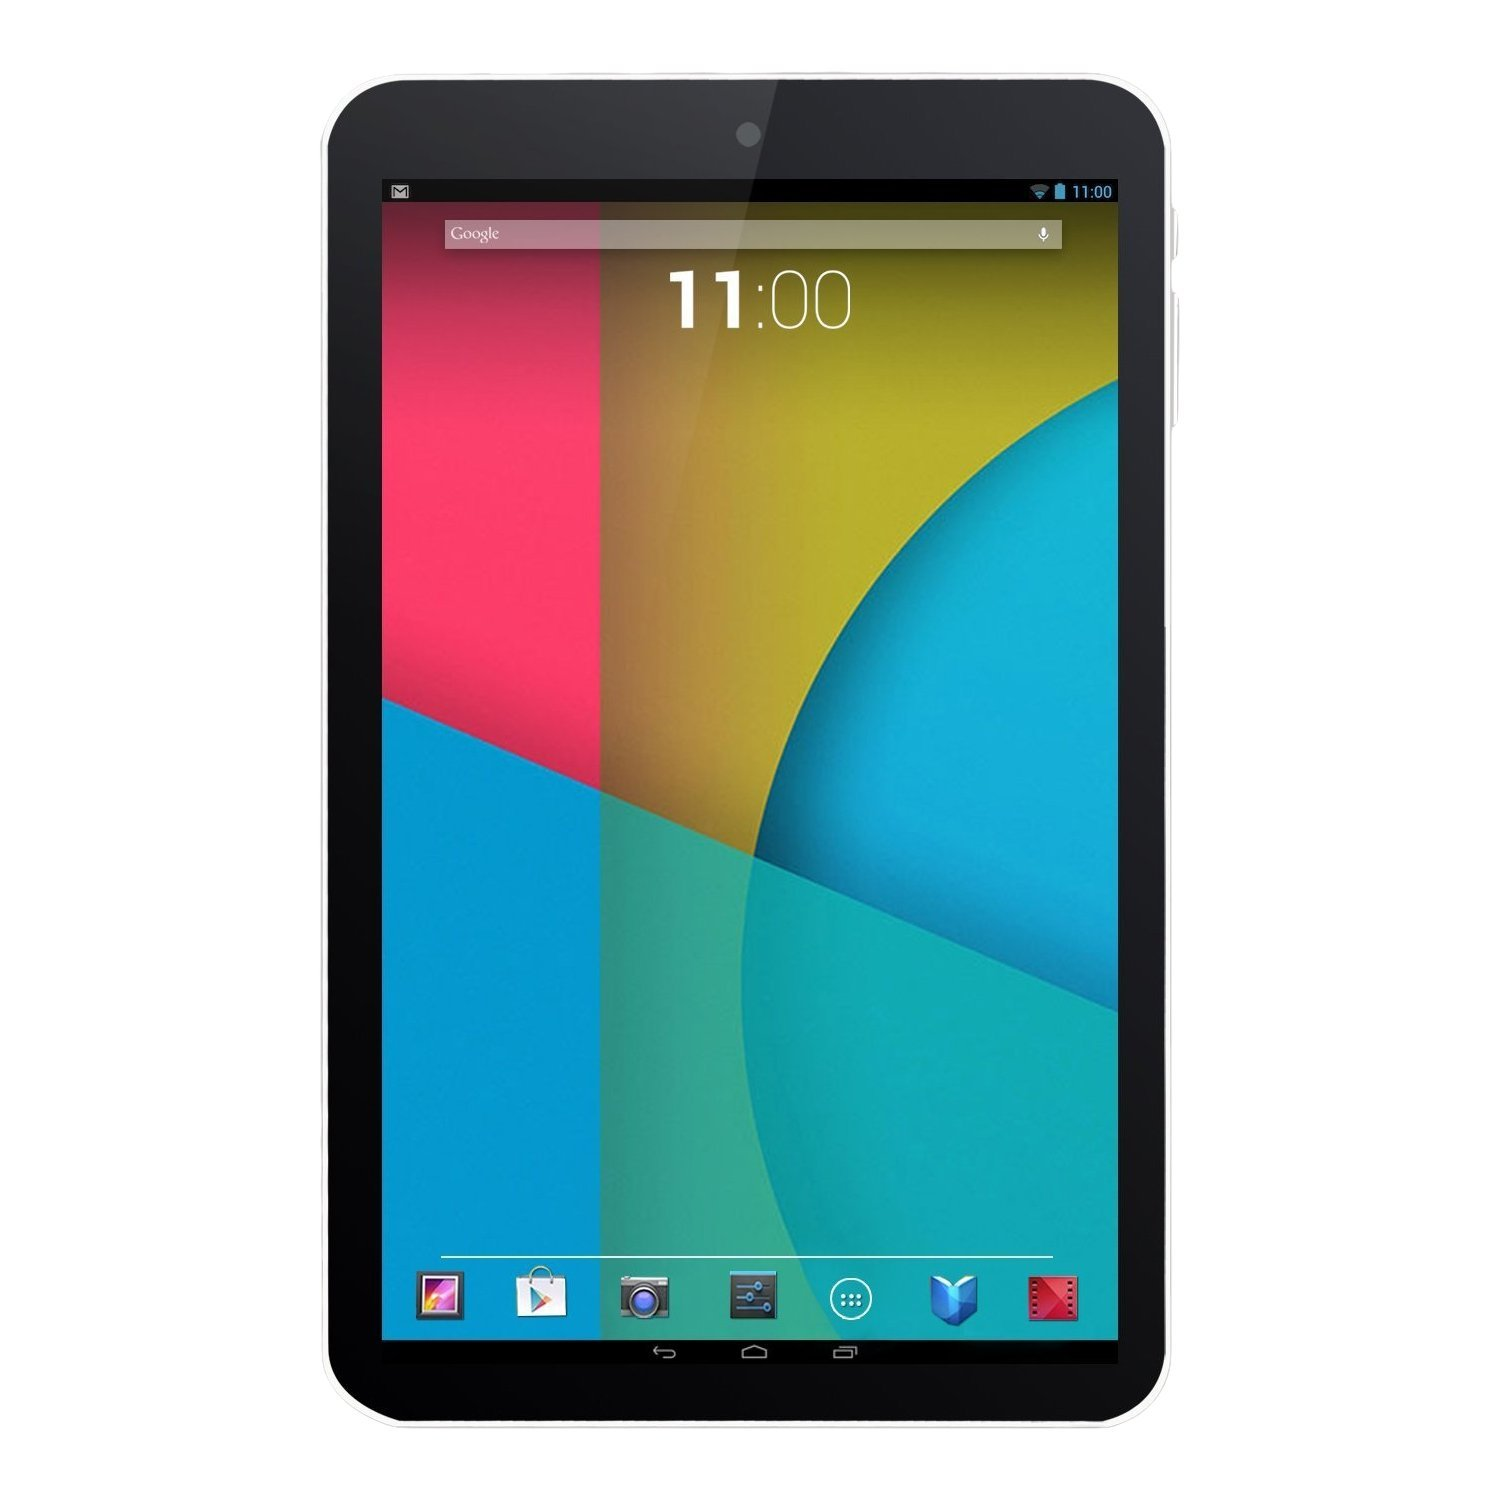 Zeepad TABZ7 Quad Core Google Android Tablet PC, 1 GB Memory 8 GB Nand Flash, Android 4.4 KitKat, IP